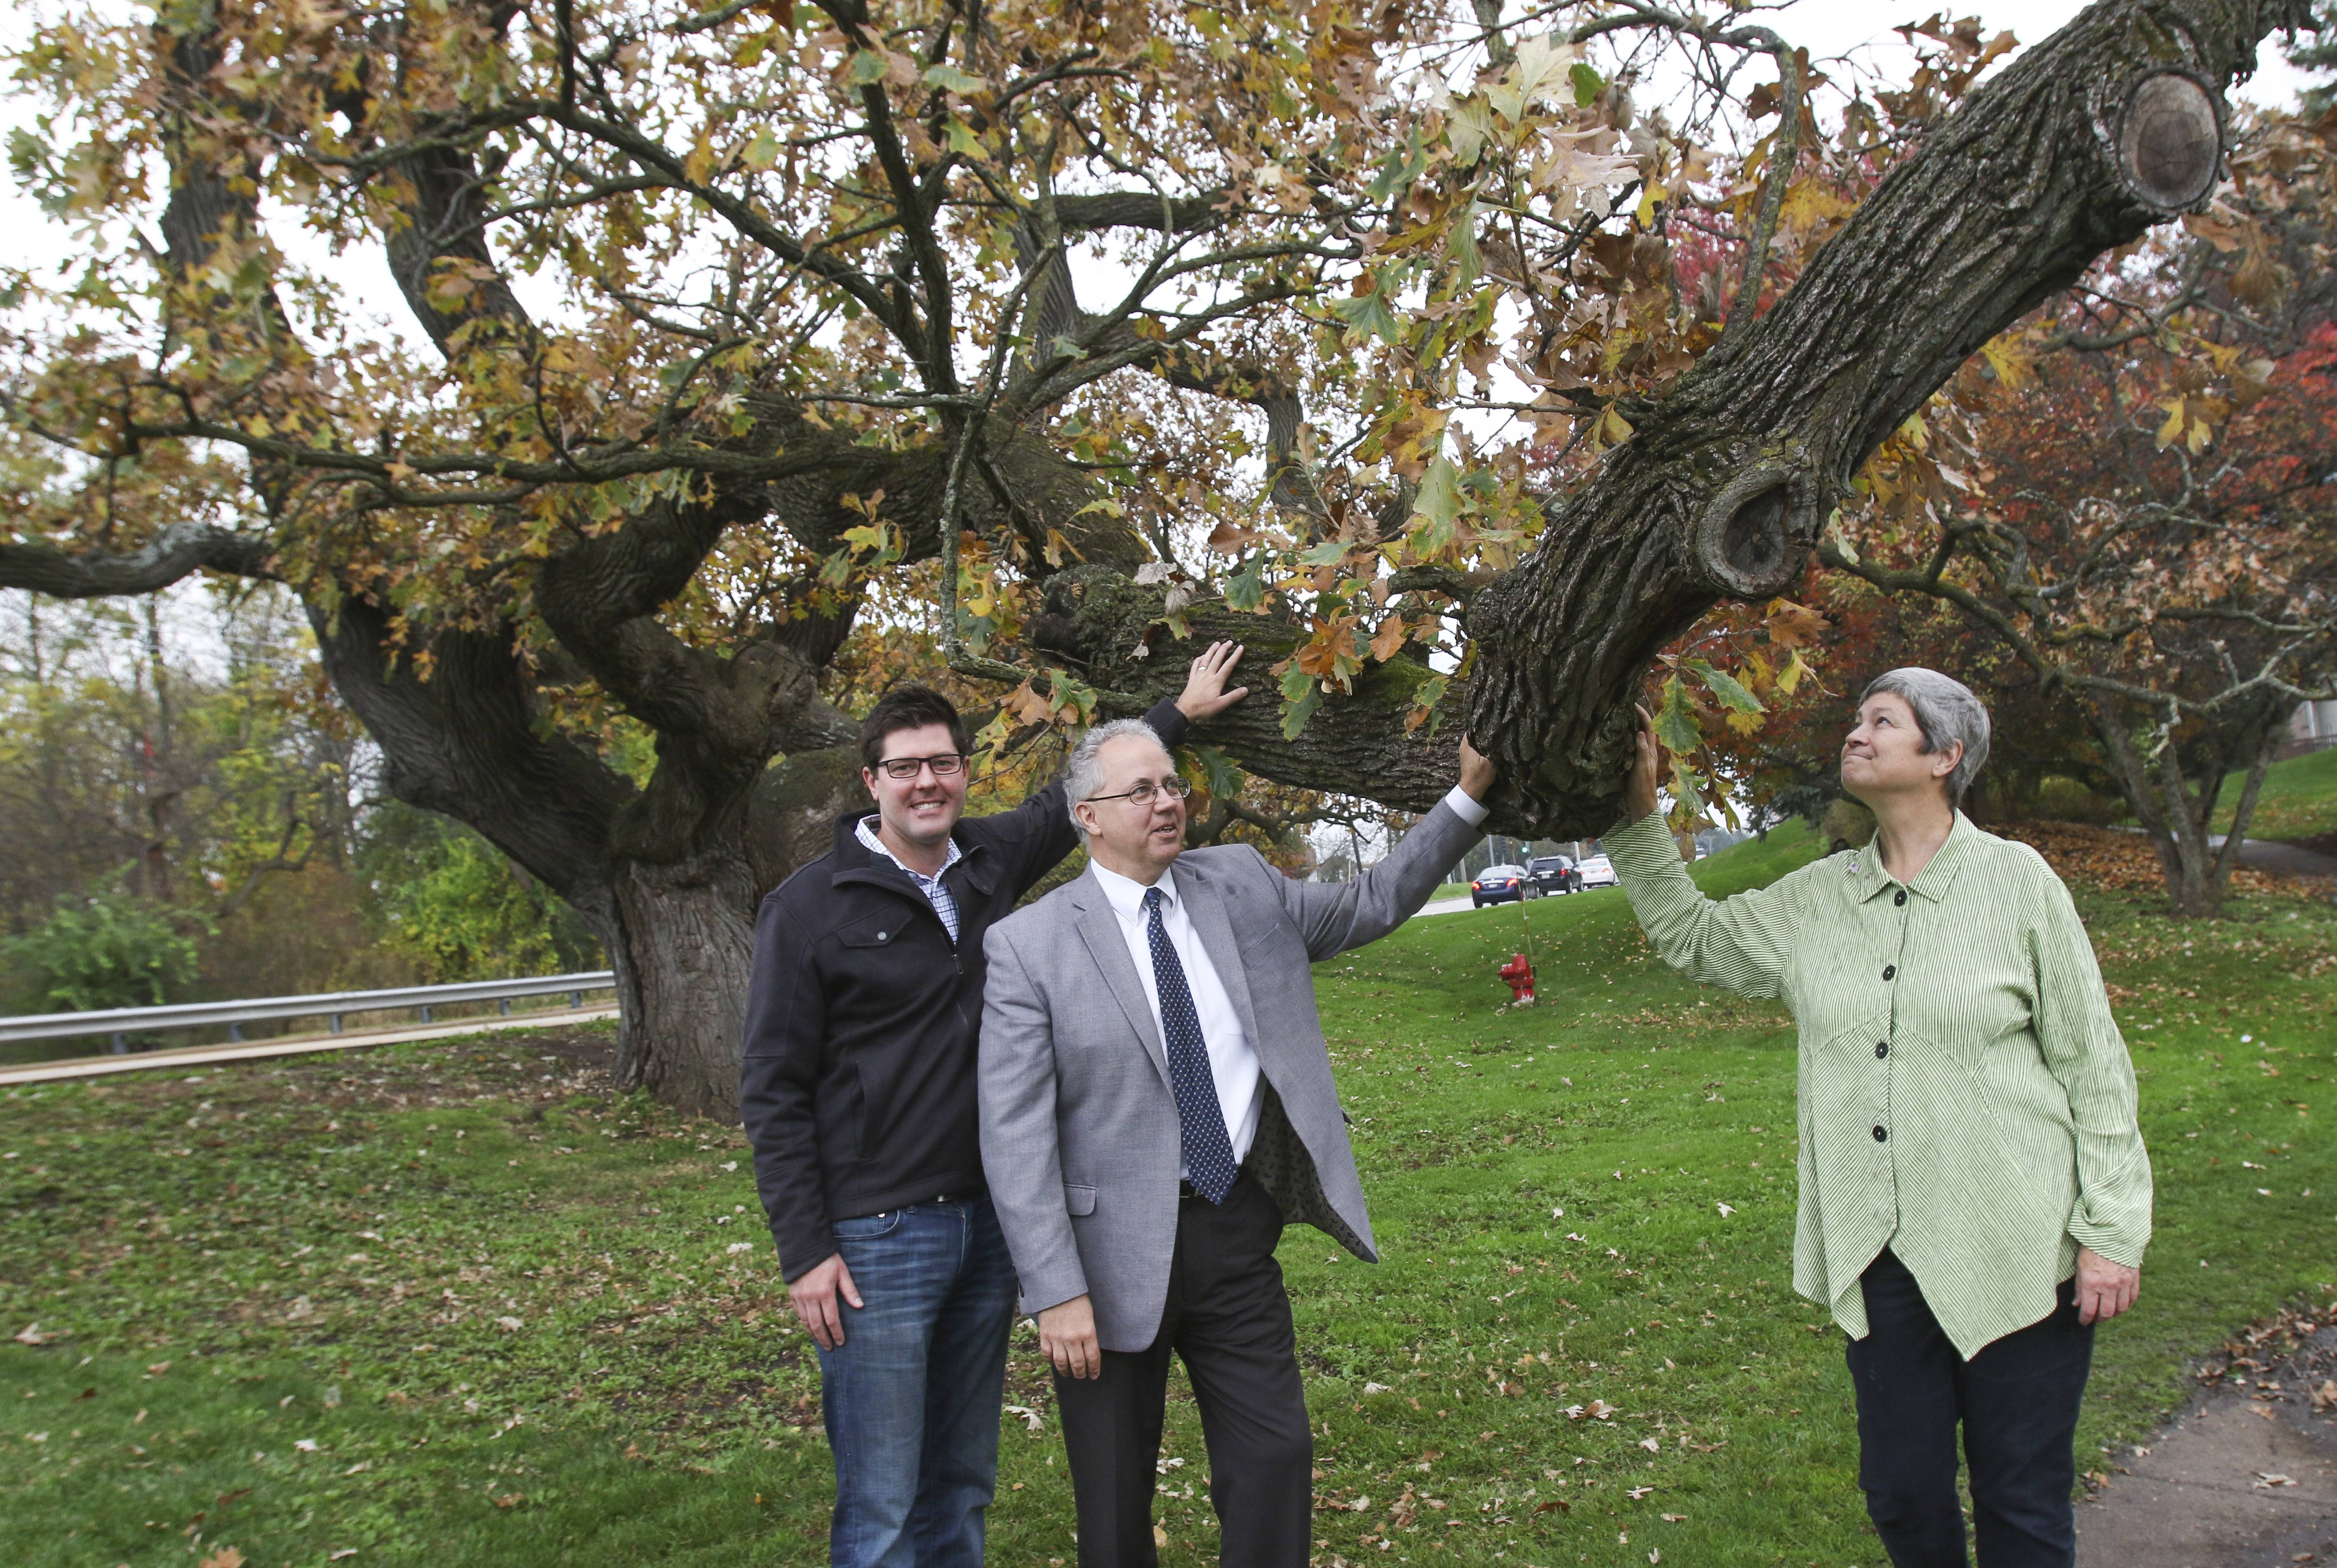 Long-living Naperville oak to find new life in art after decay